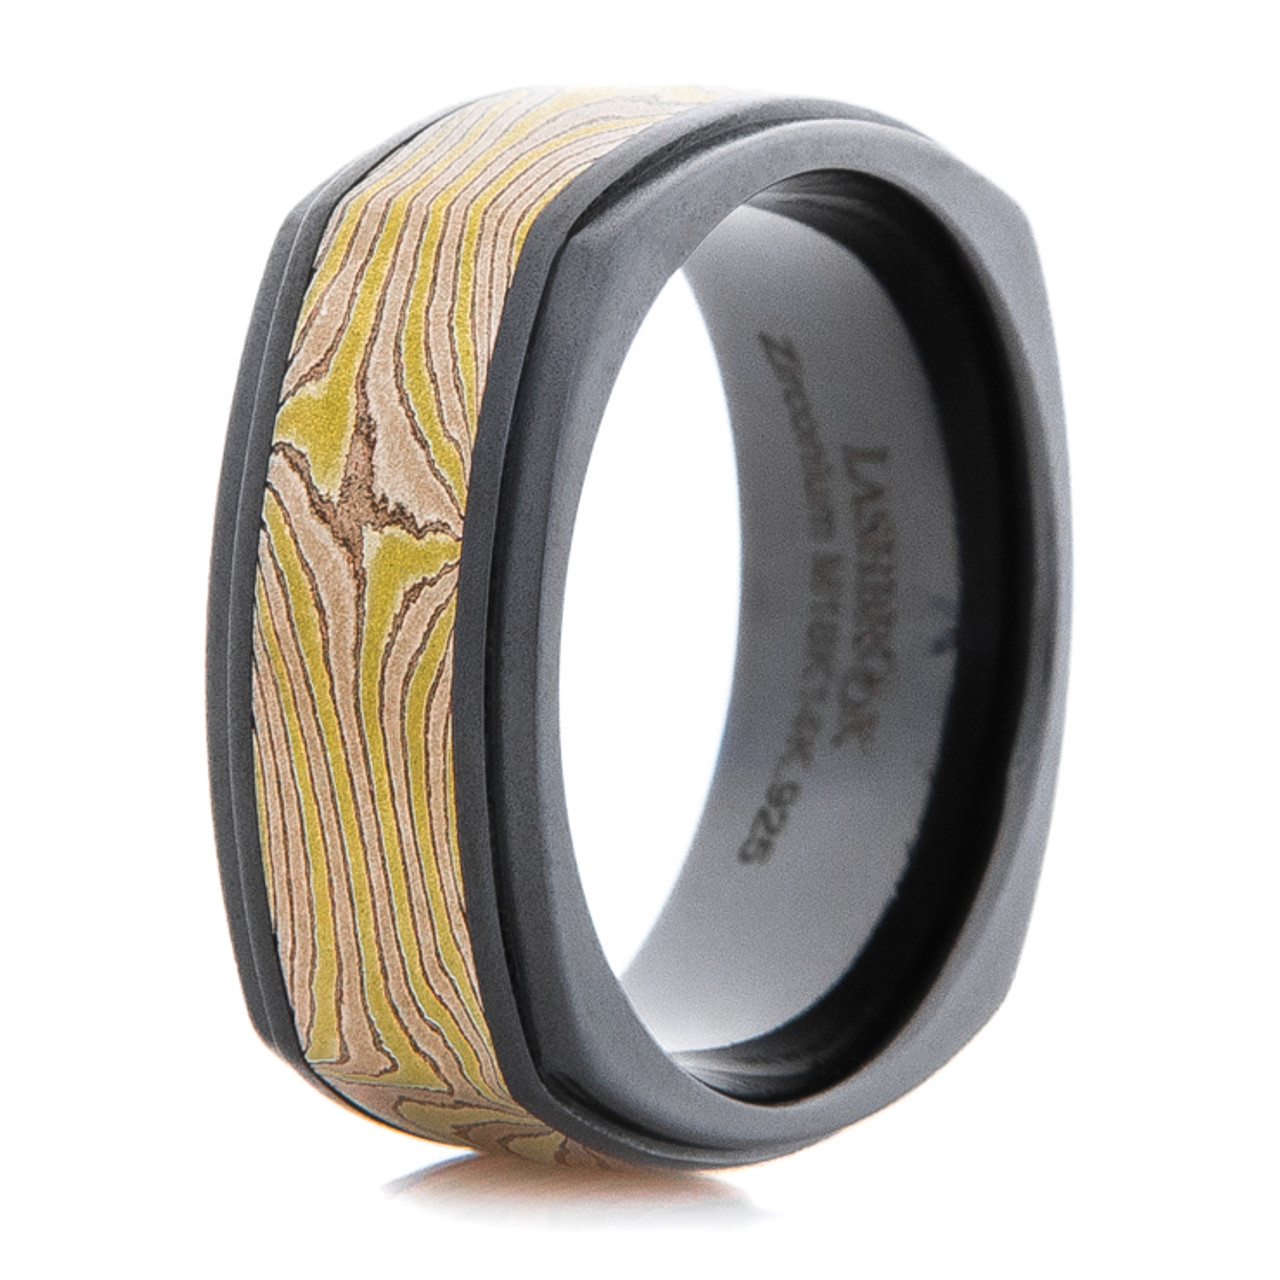 from galleries gane ploof jewelry chris yellow mg traditional gold beech rings and silver designs mokume in